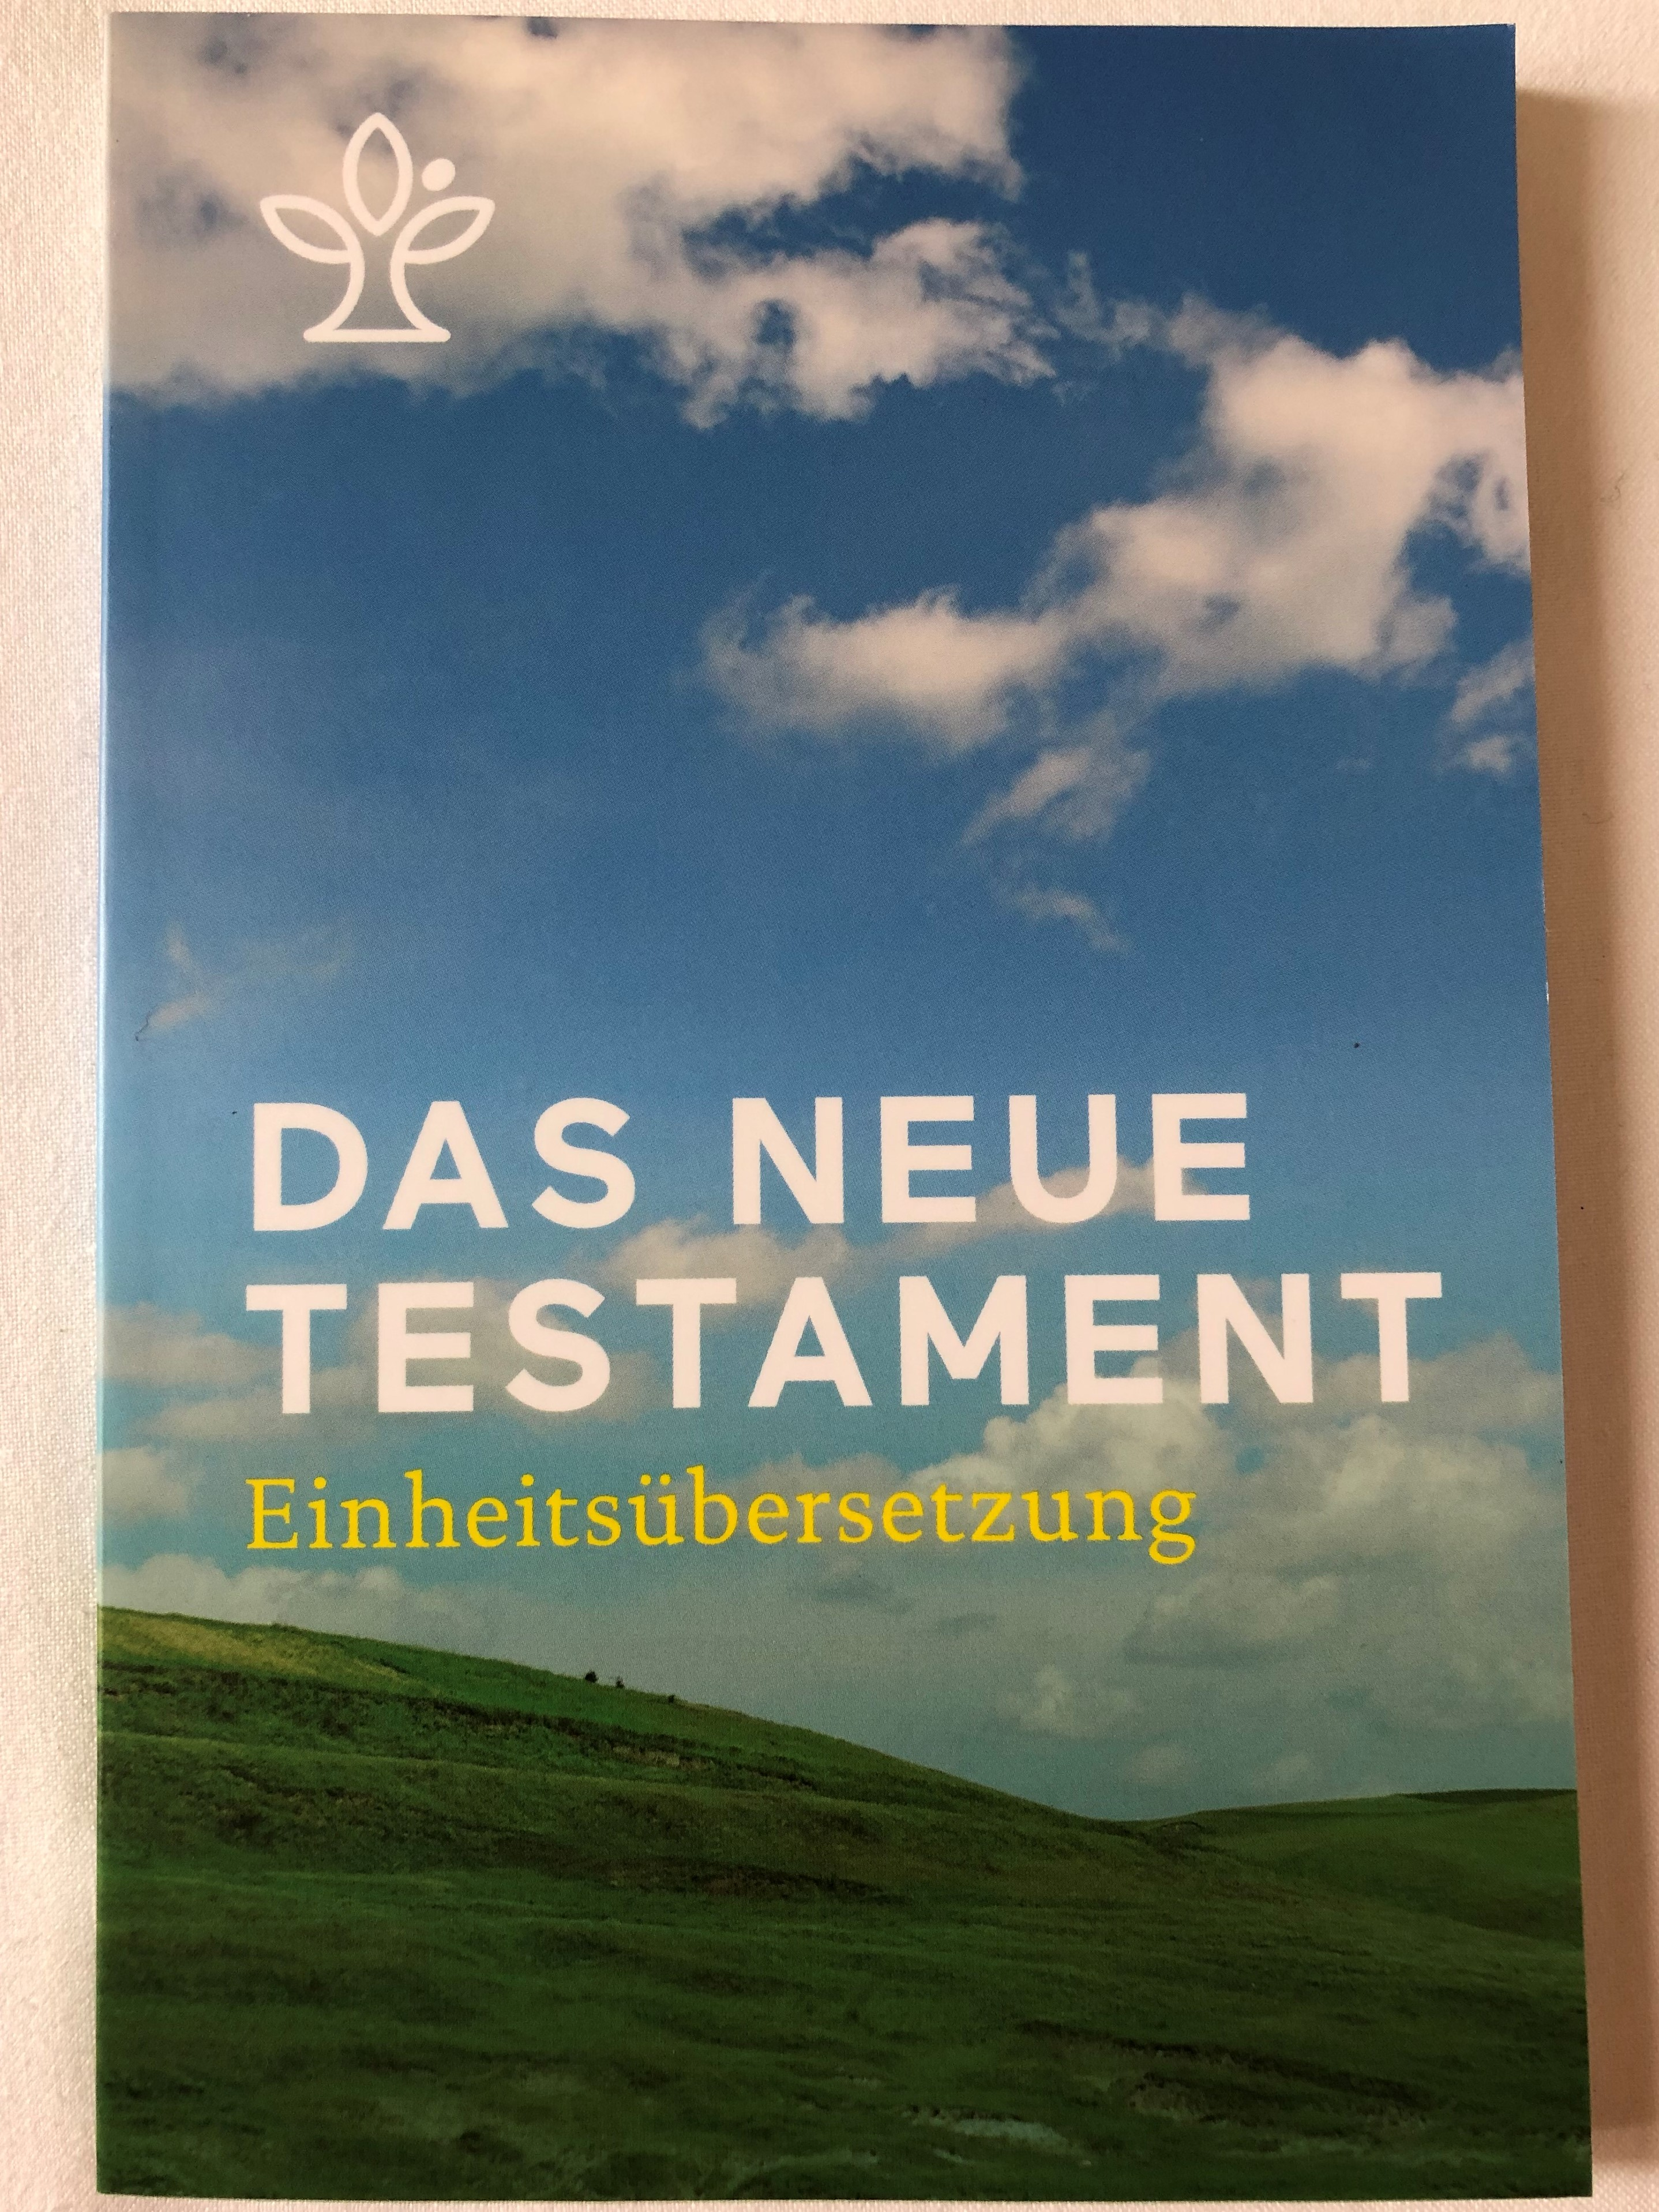 das-neue-testament-einheits-bersetzung-2.auflage-the-new-testament-in-german-unitary-translation-2nd-edition-book-introductions-references-notes-and-maps-paperback-2018-kbw-1-.jpg